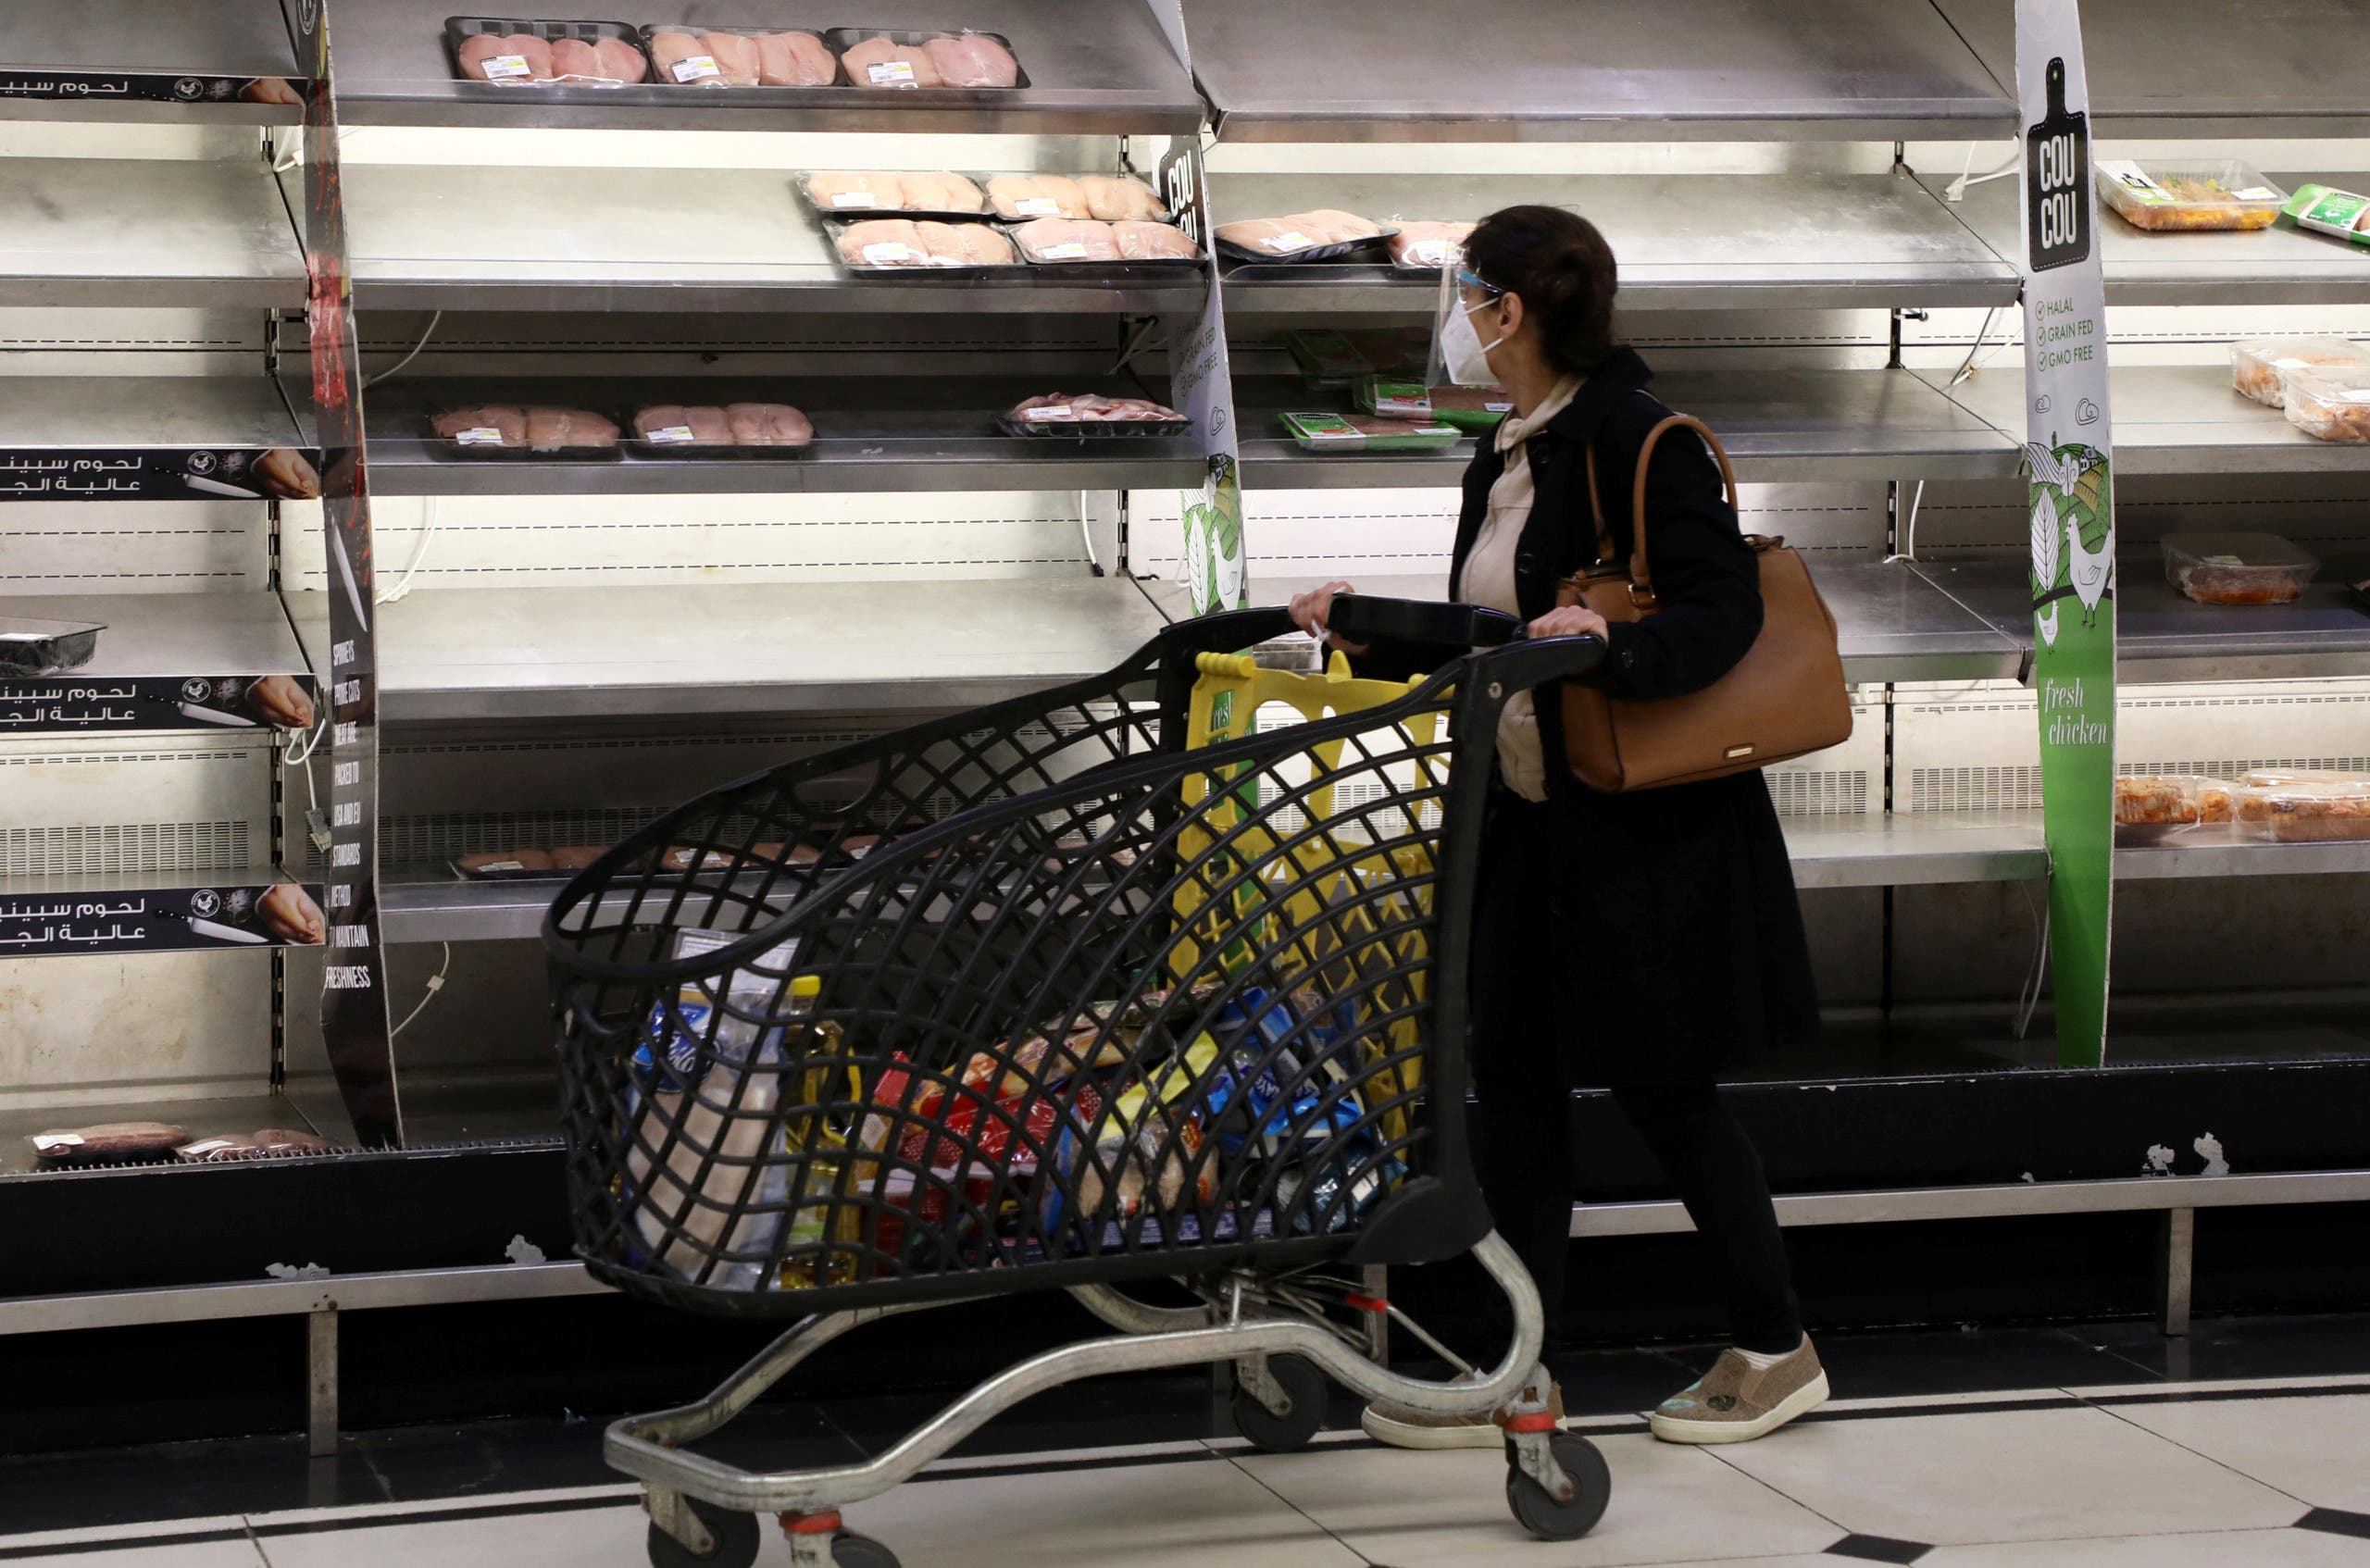 A shopper walks past near-empty shelves at a supermarket in Beirut, Lebanon March 16, 2021. Picture taken March 16, 2021. (Reuters)